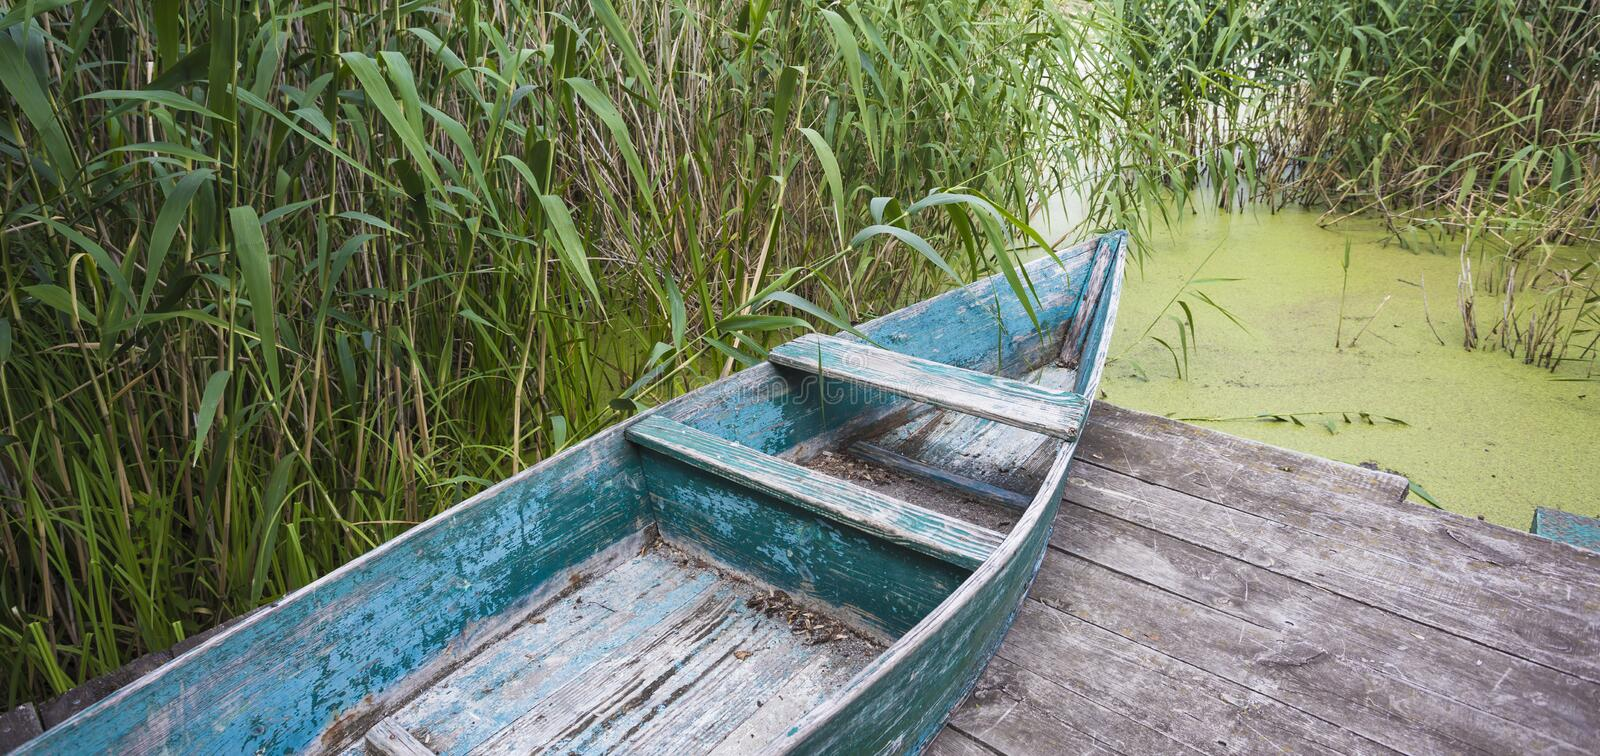 Murky autumn day with old wooden boat near the lake with duckweed and bulrush - calm and peaceful picture royalty free stock image